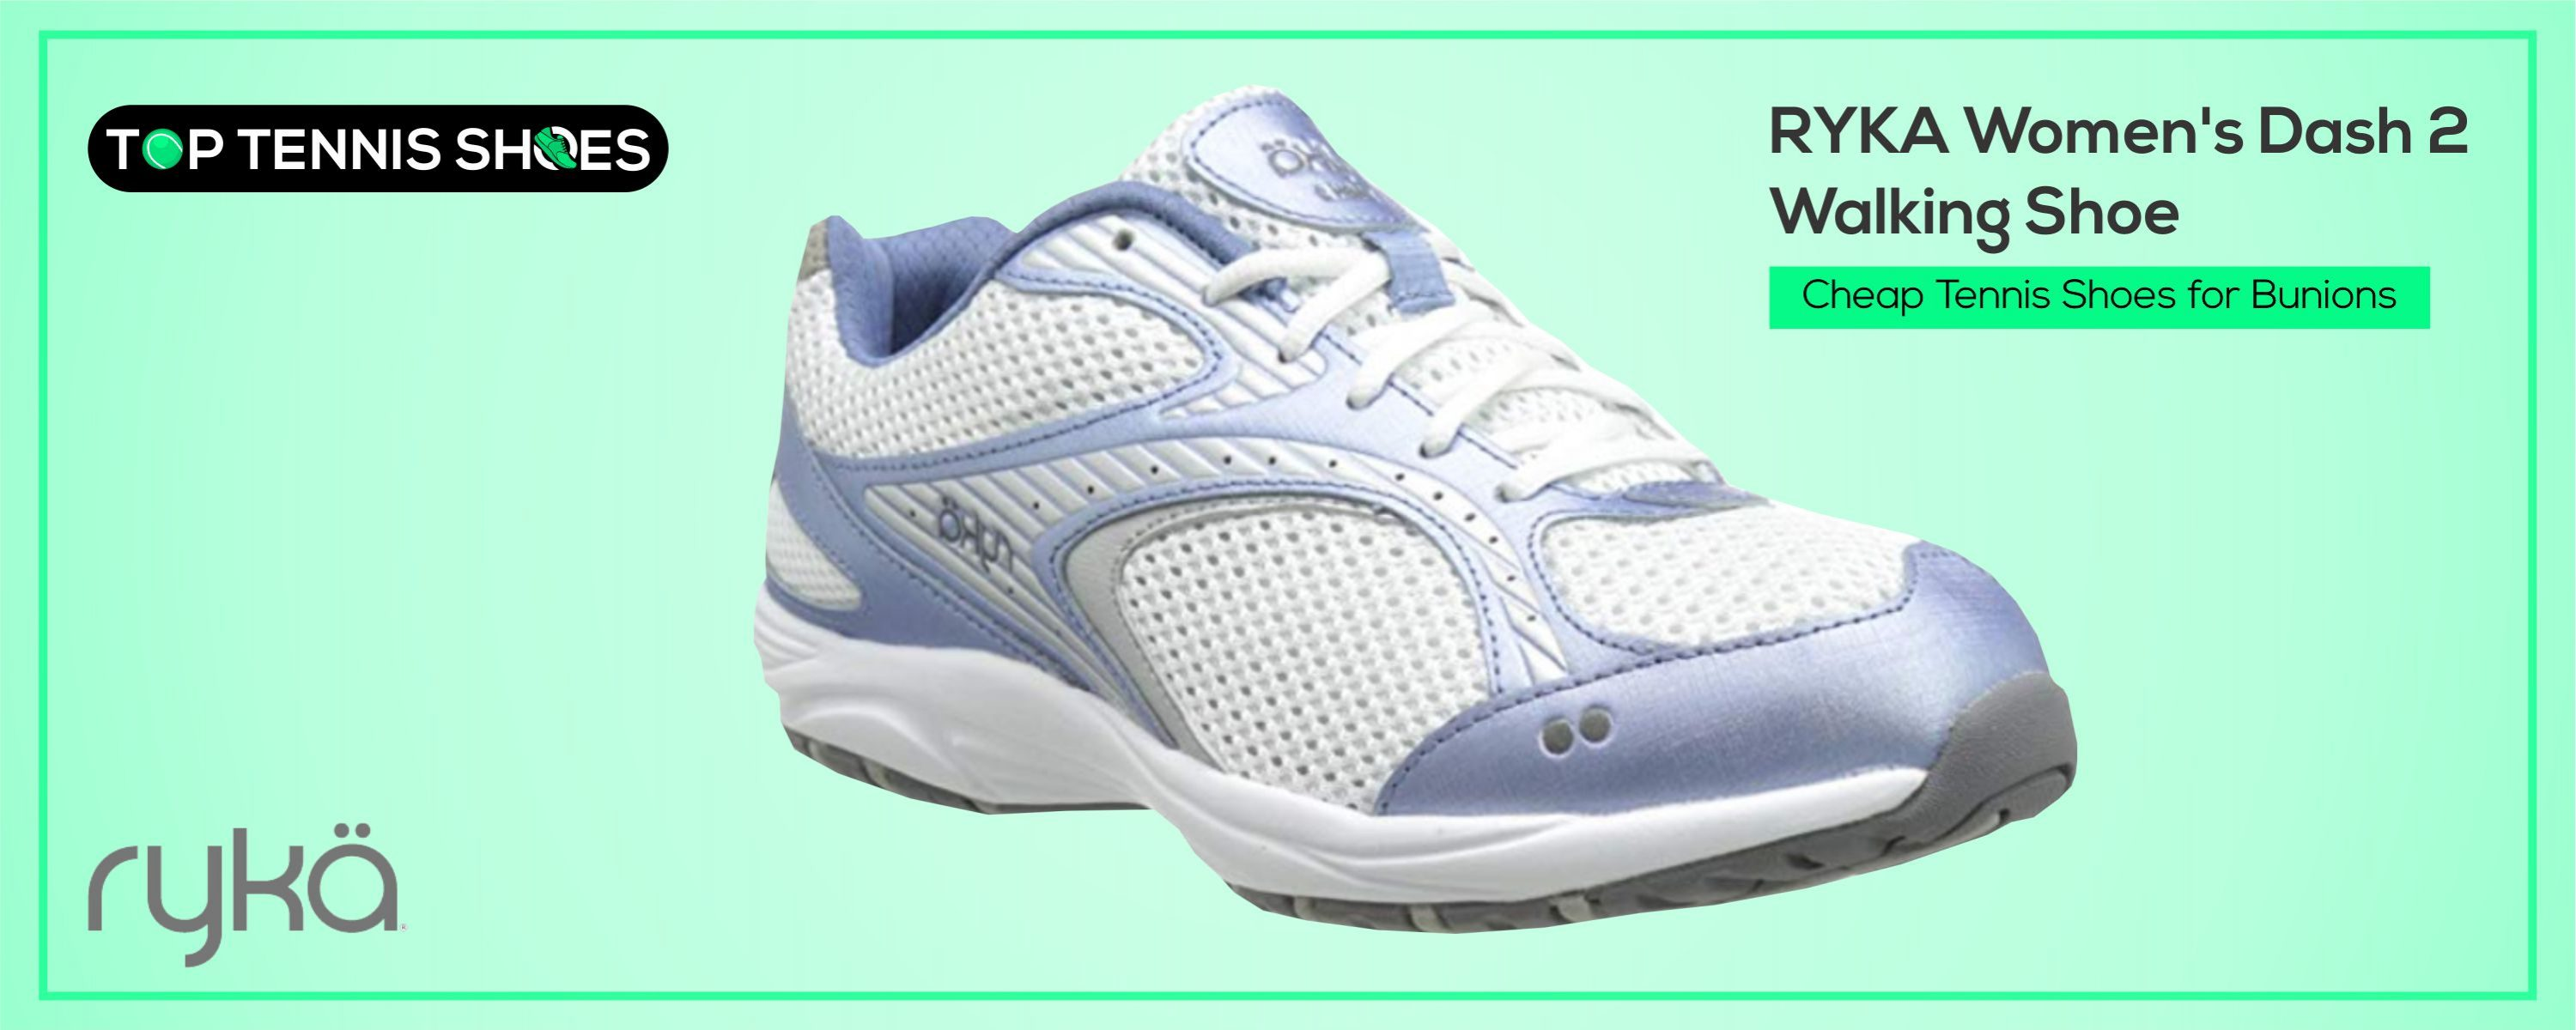 Cheap Tennis Shoes for Bunions